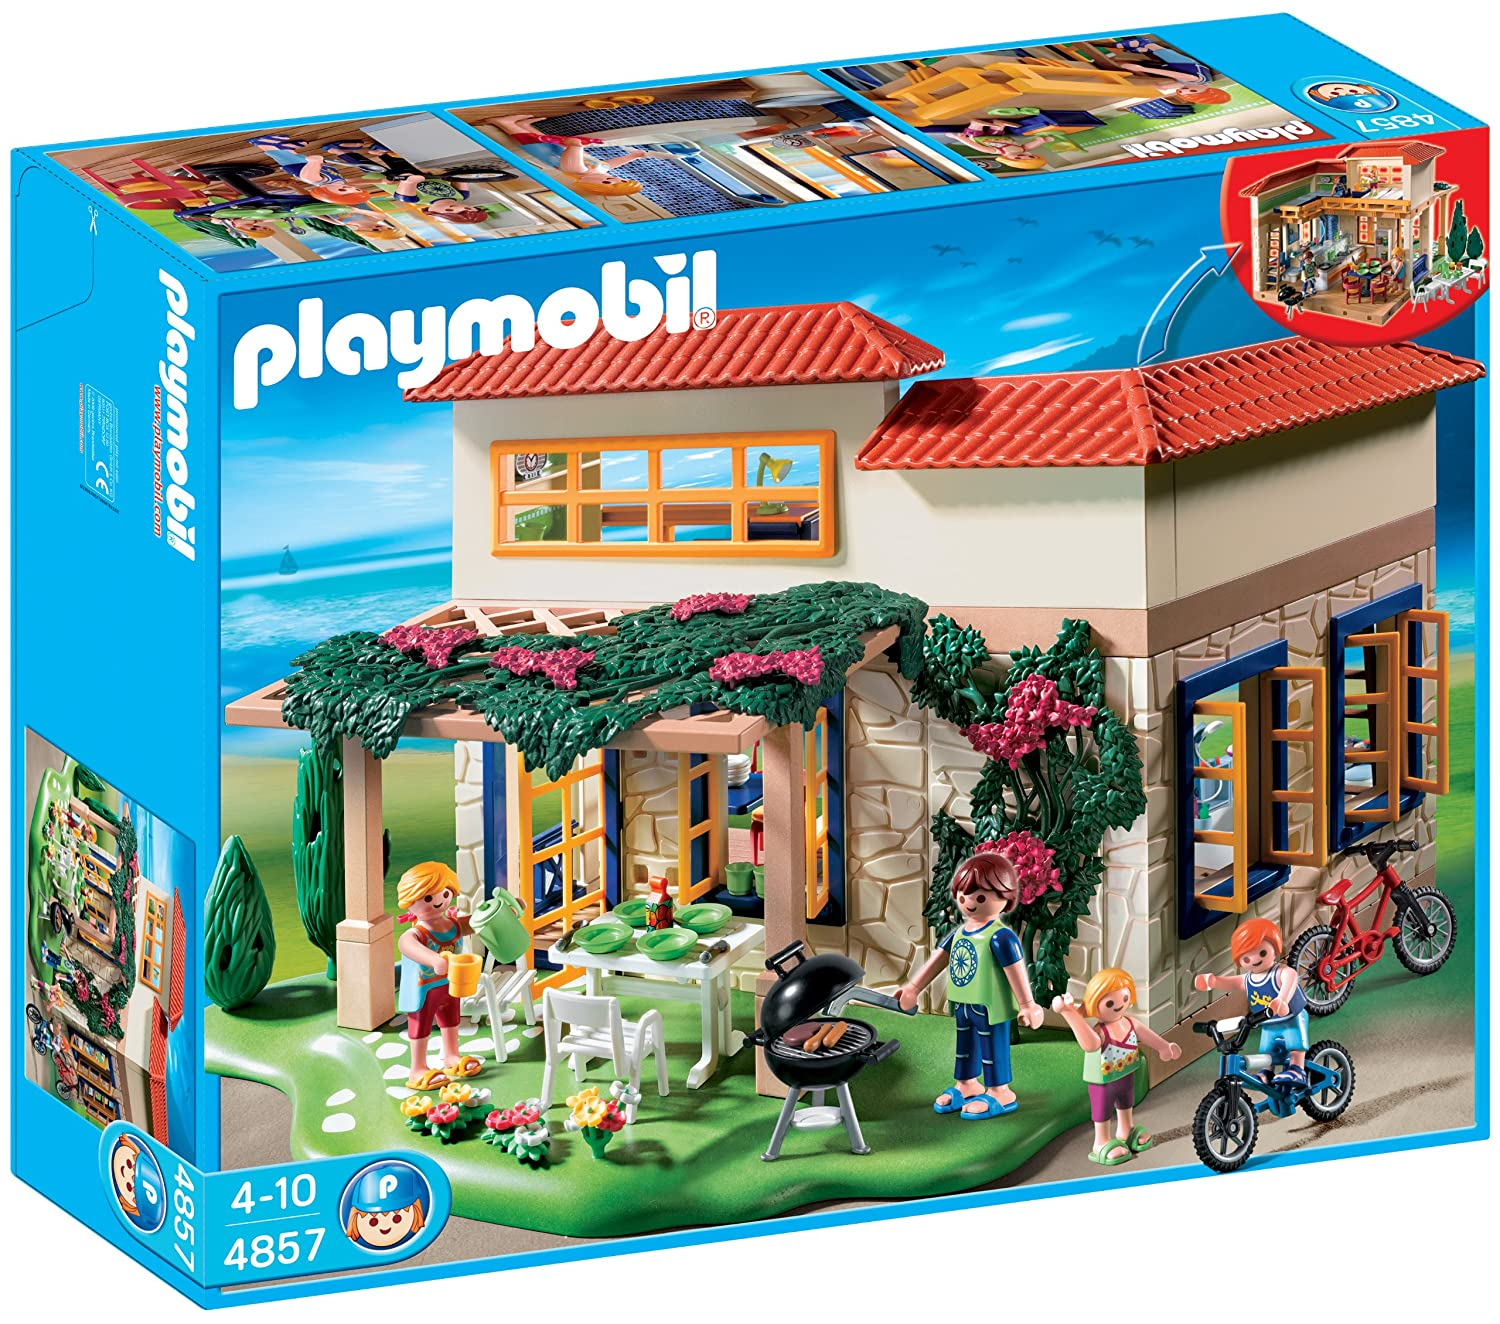 prix maison playmobil. Black Bedroom Furniture Sets. Home Design Ideas